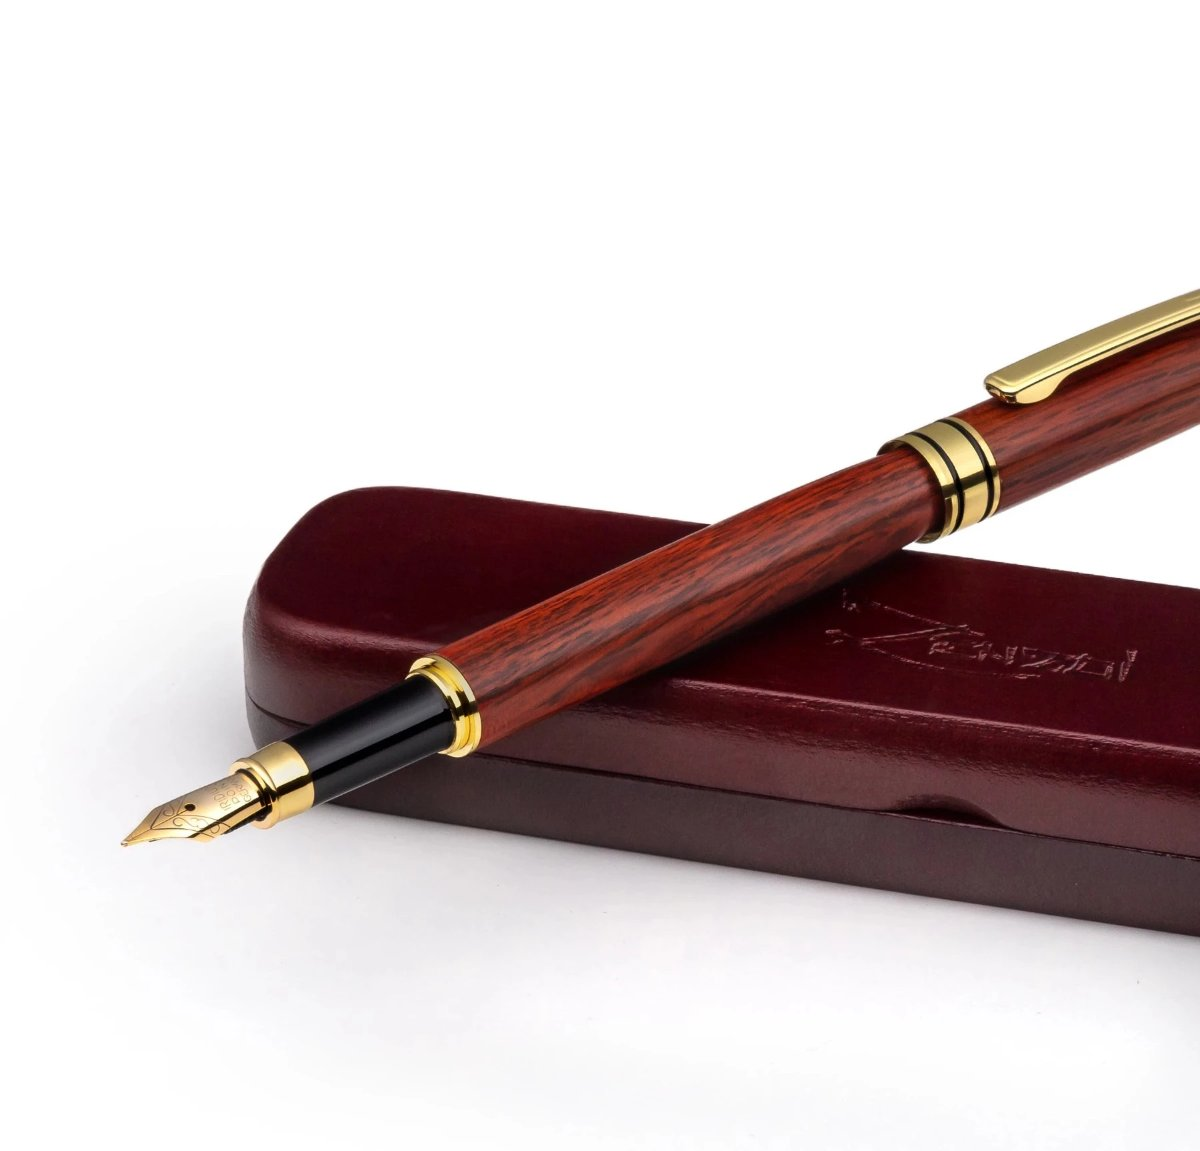 Handcrafted Burgundy Wood Fountain Pen Set –  Calligraphy Stylograph Pens W/ Wooden Gift Box Case